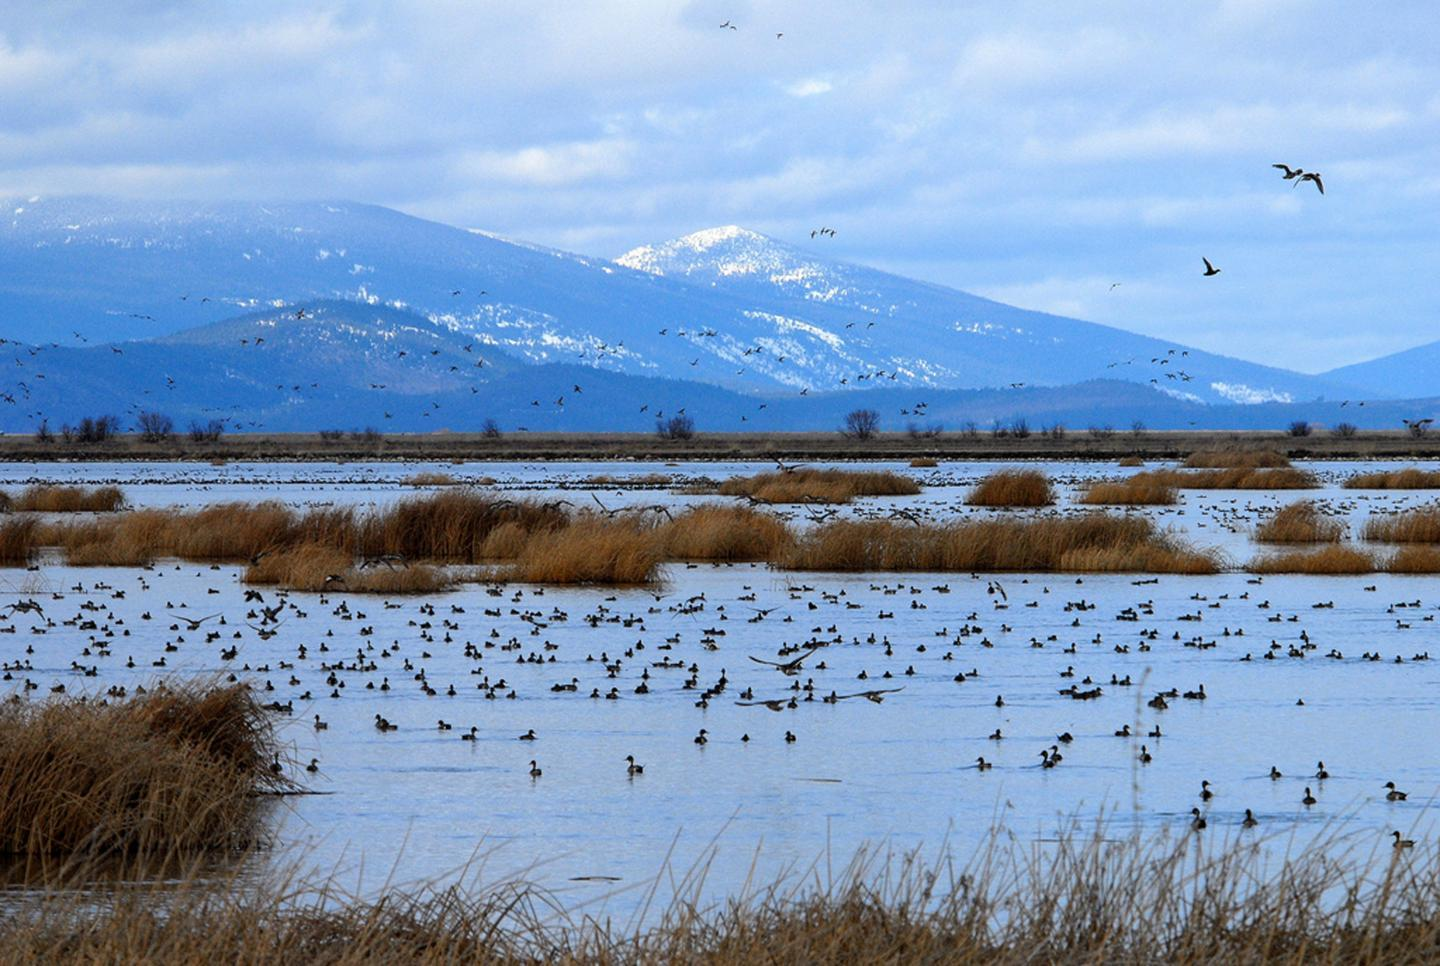 wetlands in california and oregon could disappear with sea level rise